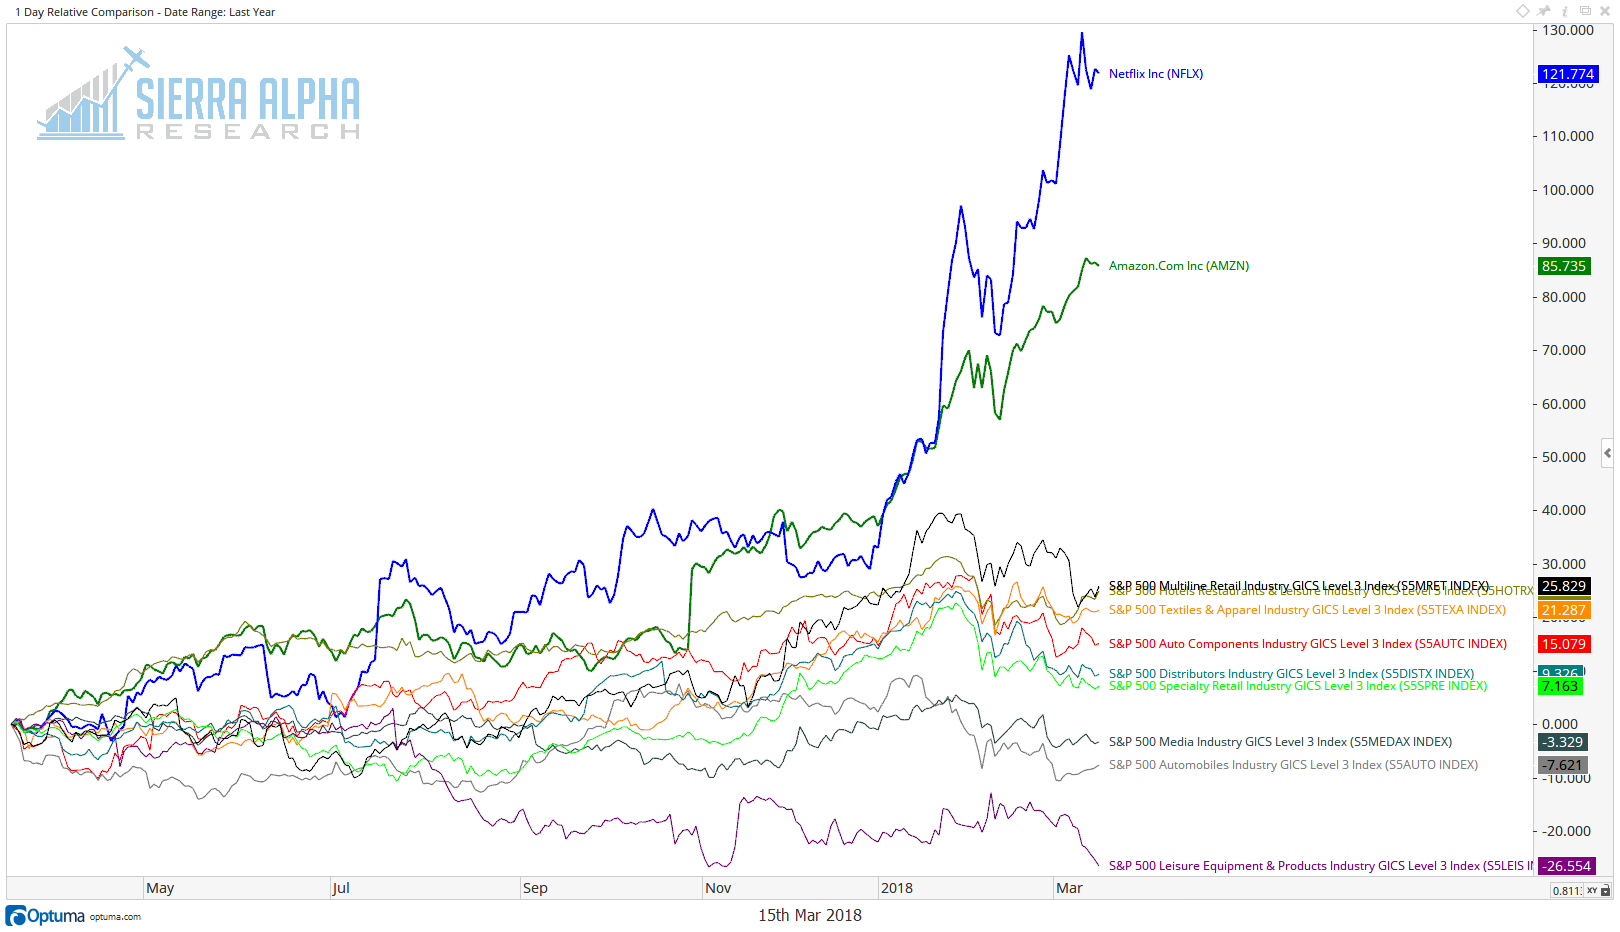 AMZN NFLX and consumer groups.png